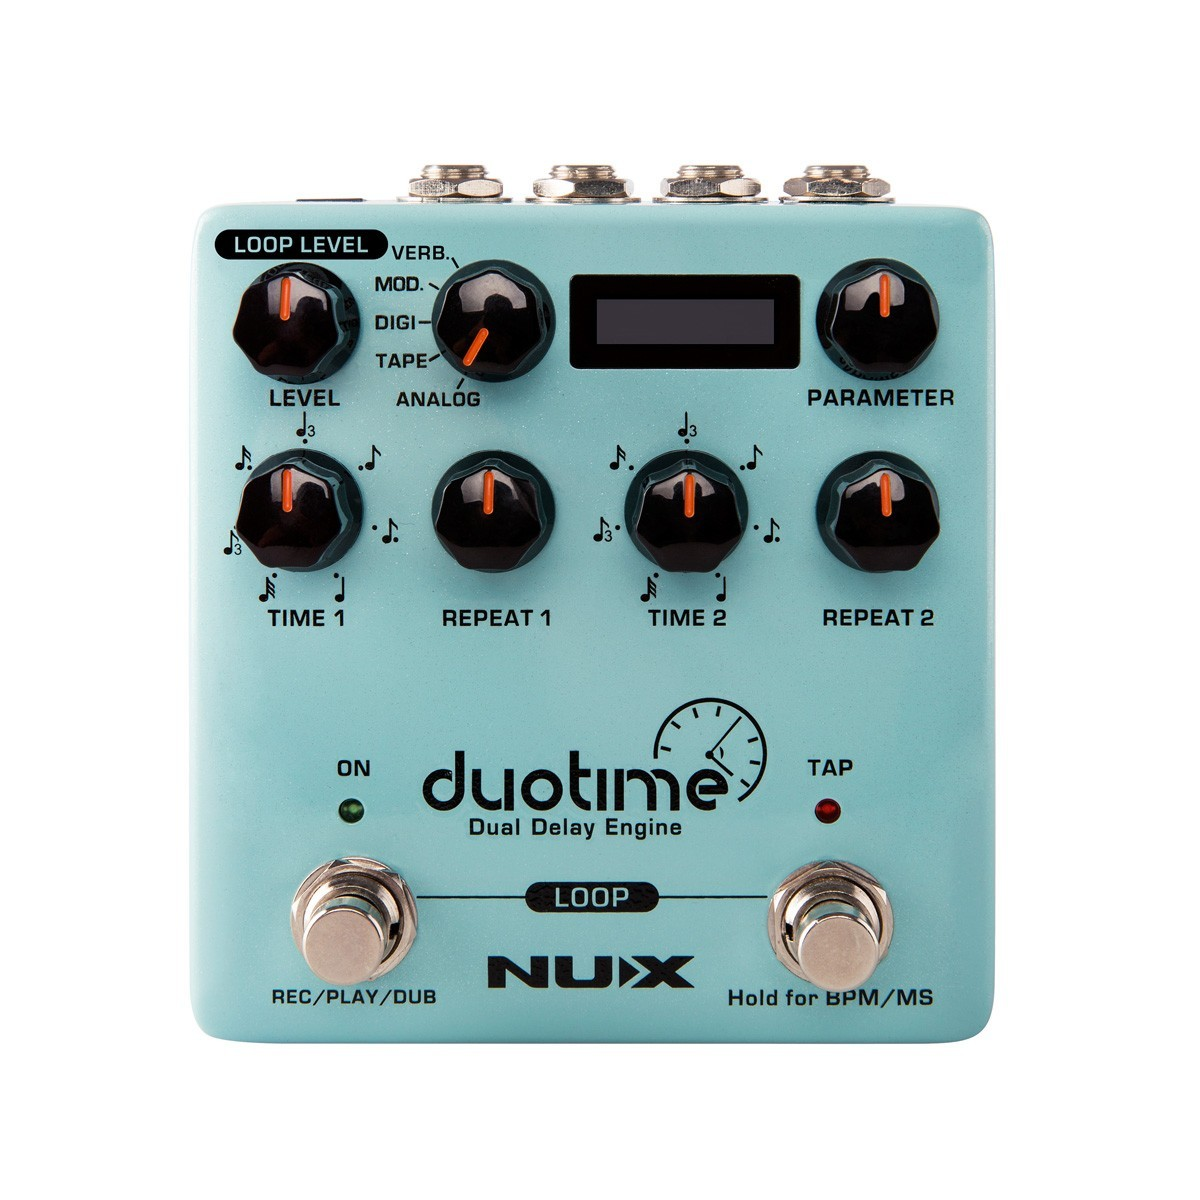 STOMPBOX NUX NDD-6 DUOTIME (DUAL DELAY)